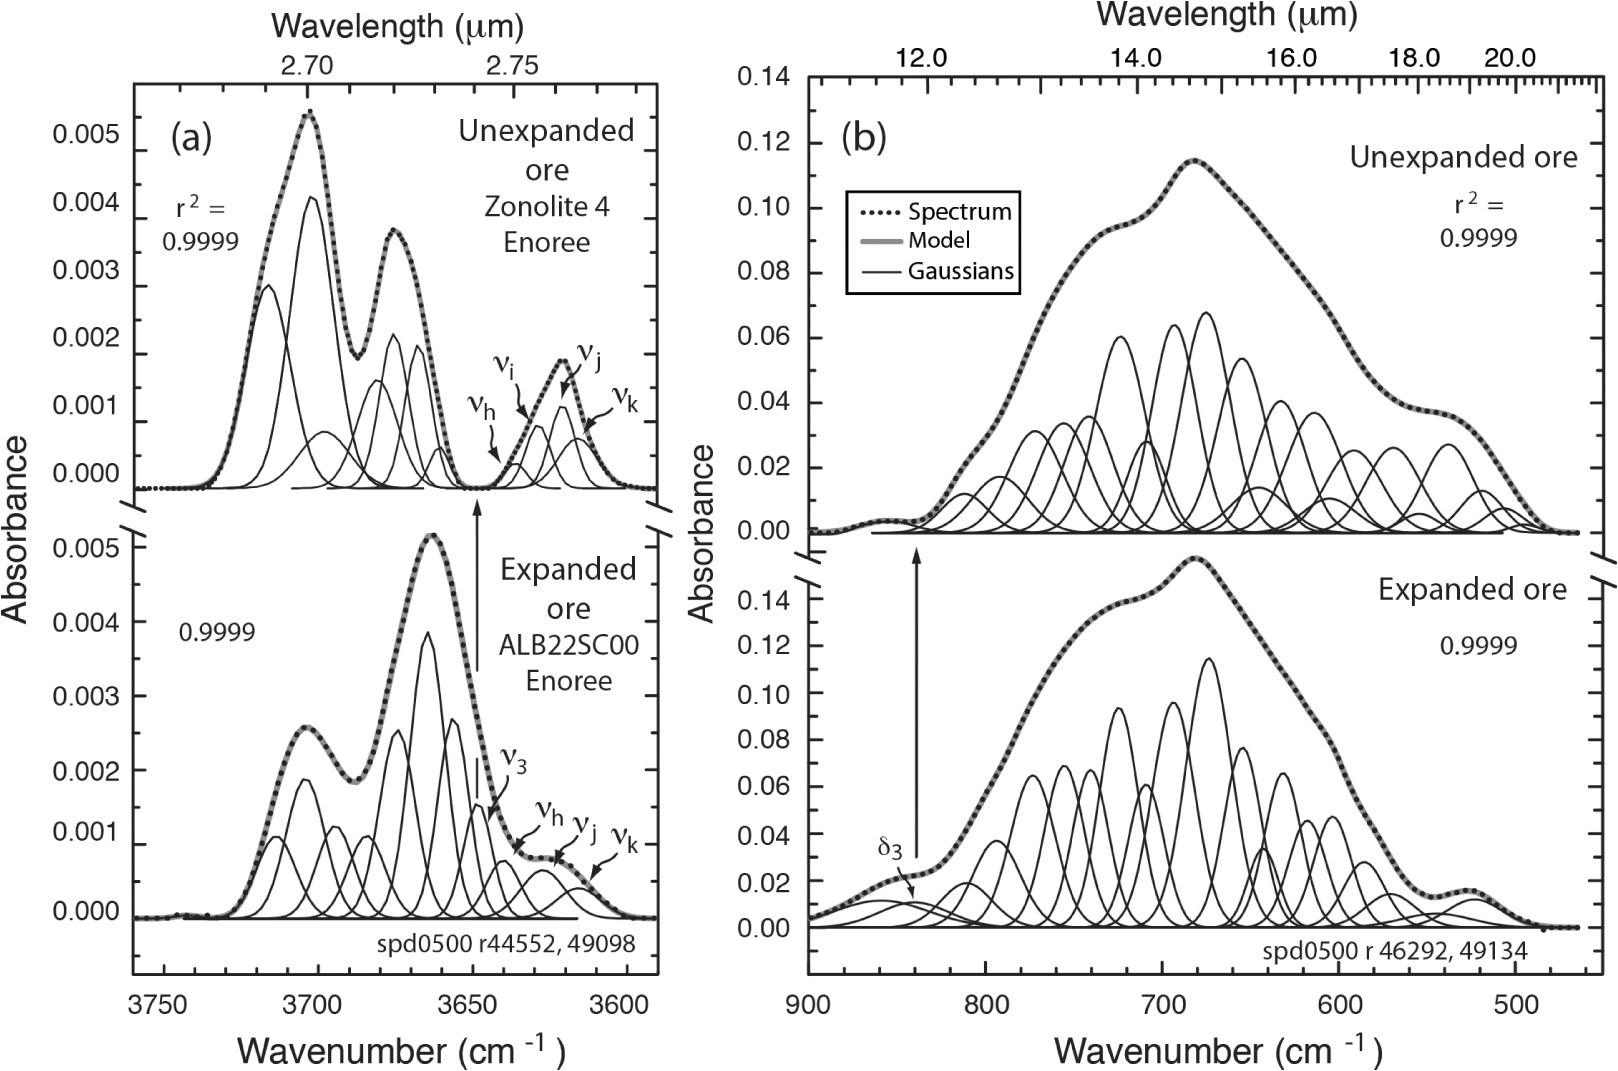 continuum removed absorbance spectra of the unexpanded zonolite 4 and expanded alb22sc00 ore samples from